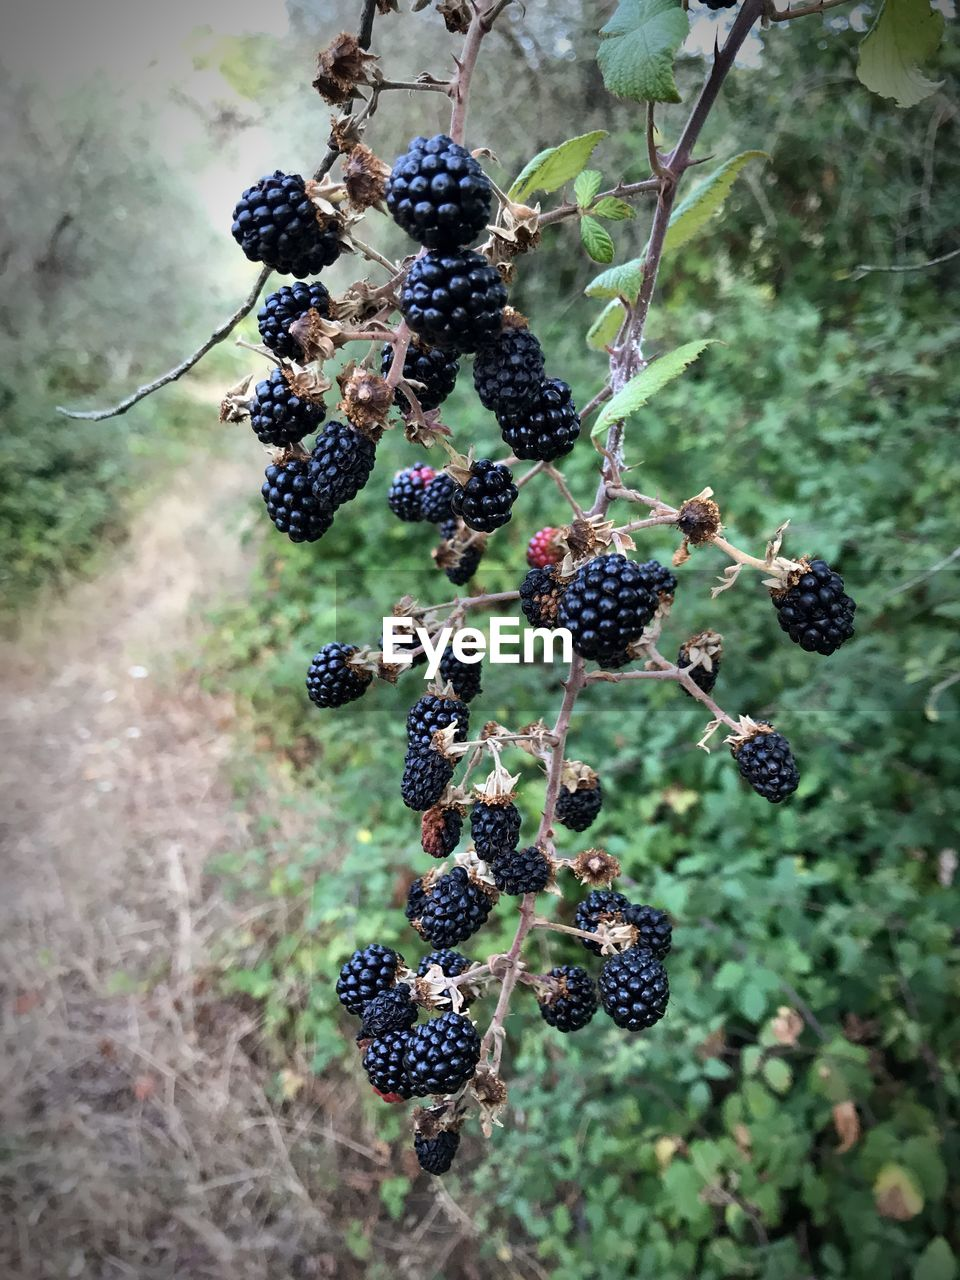 healthy eating, food and drink, food, fruit, berry fruit, freshness, blackberry - fruit, wellbeing, focus on foreground, plant, growth, close-up, day, no people, tree, ripe, nature, blackberry, outdoors, hanging